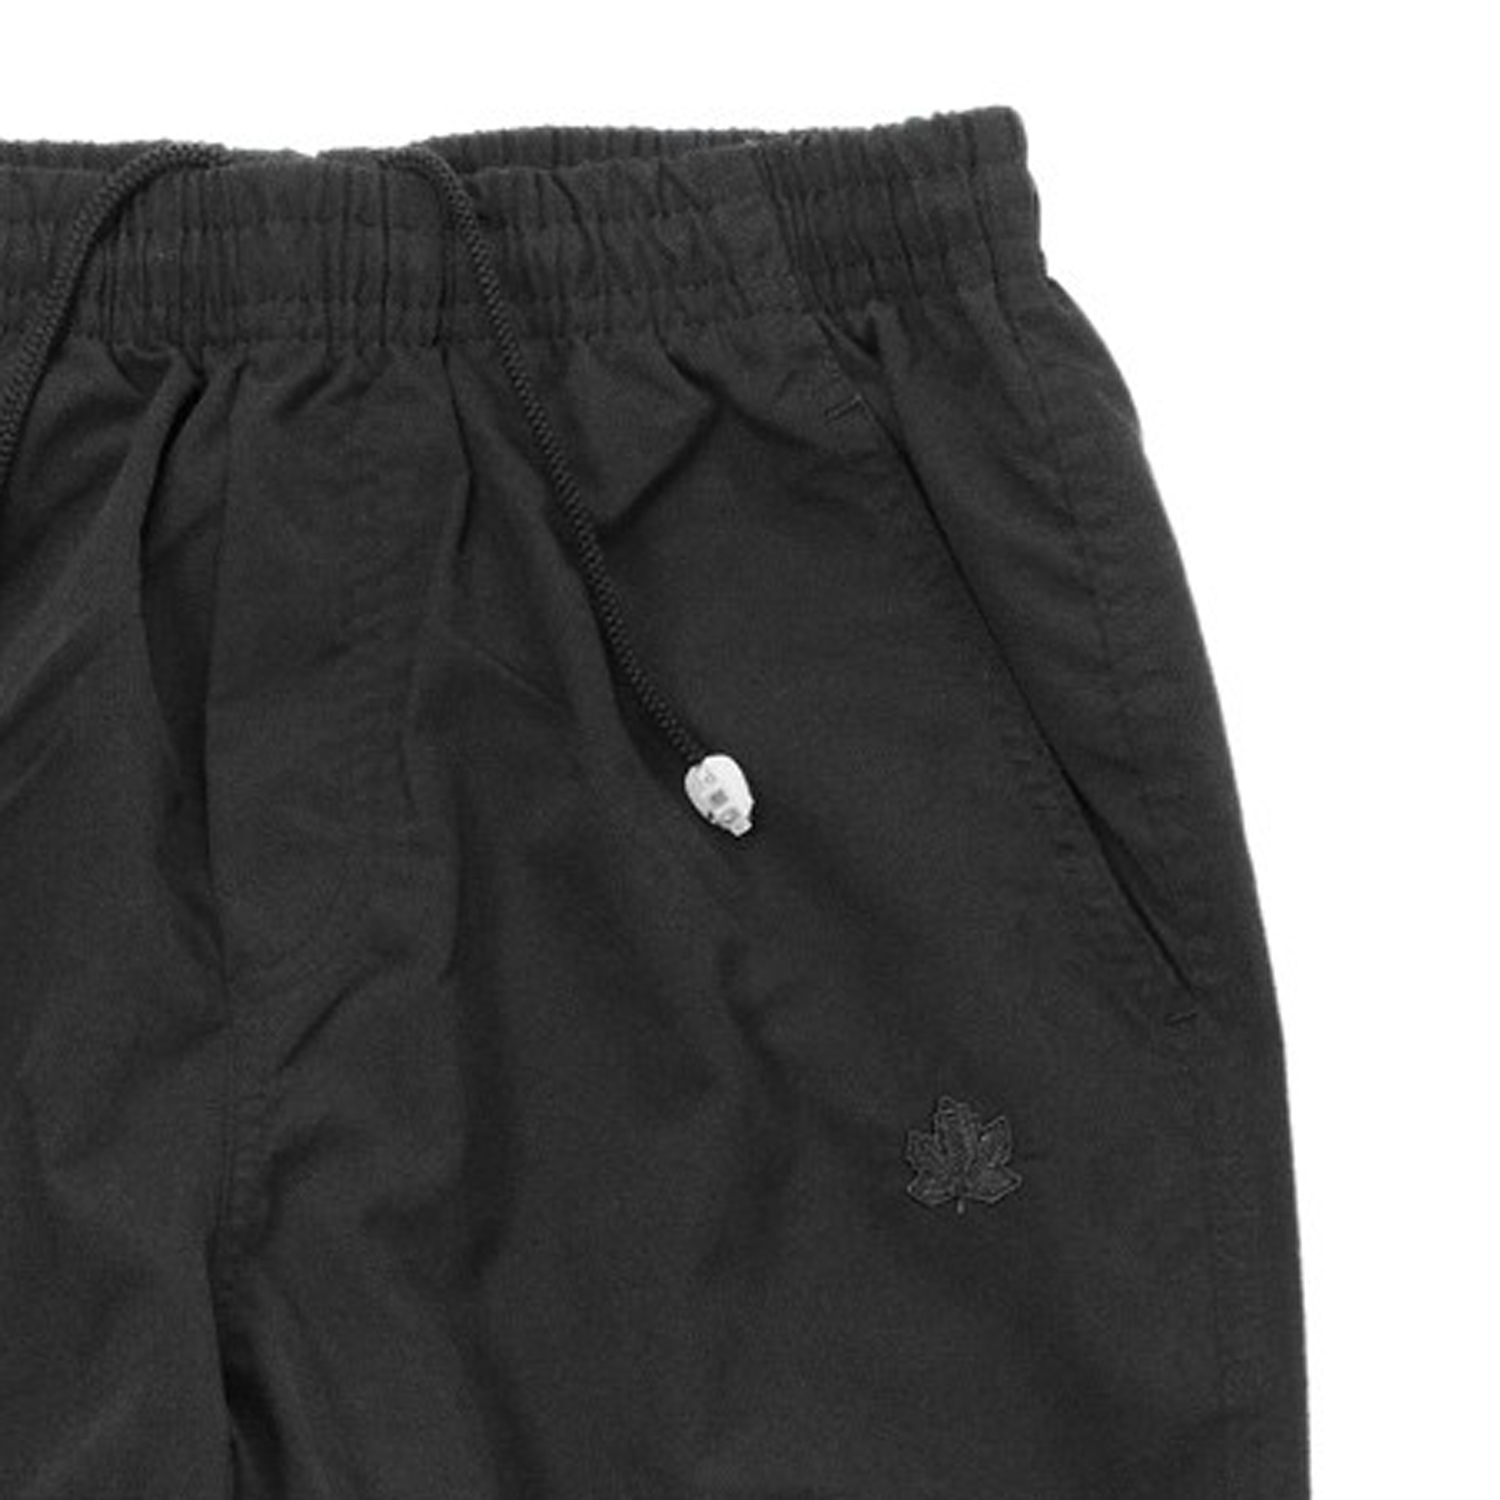 Detail Image to Micro fitness pants in black from Ahorn Sportswear in large sizes up to 10 XL